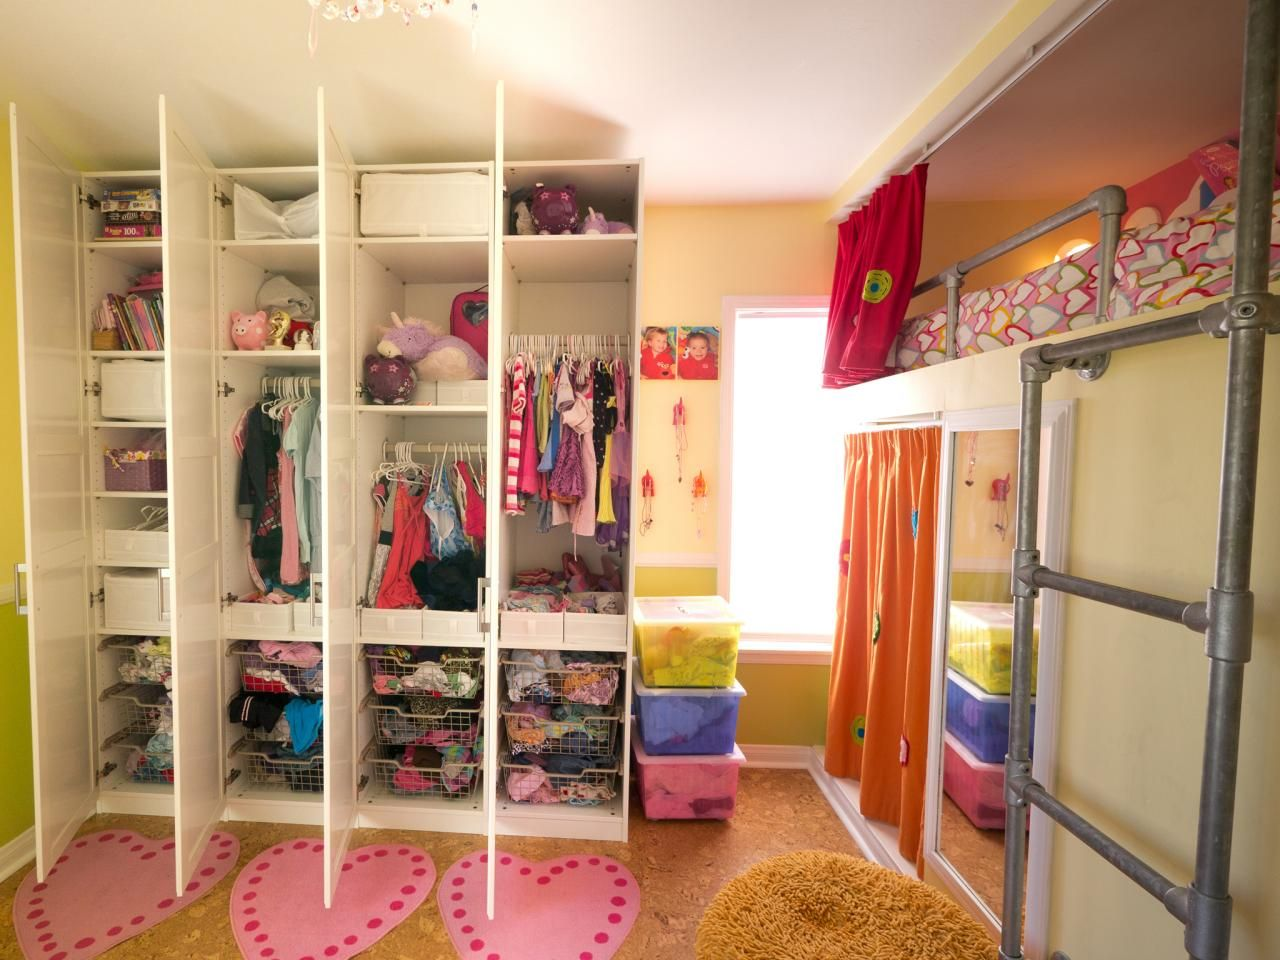 Cabinet Design For Clothes For Kids This Shared Bedroom Makes The Most Of The Space With Industrial